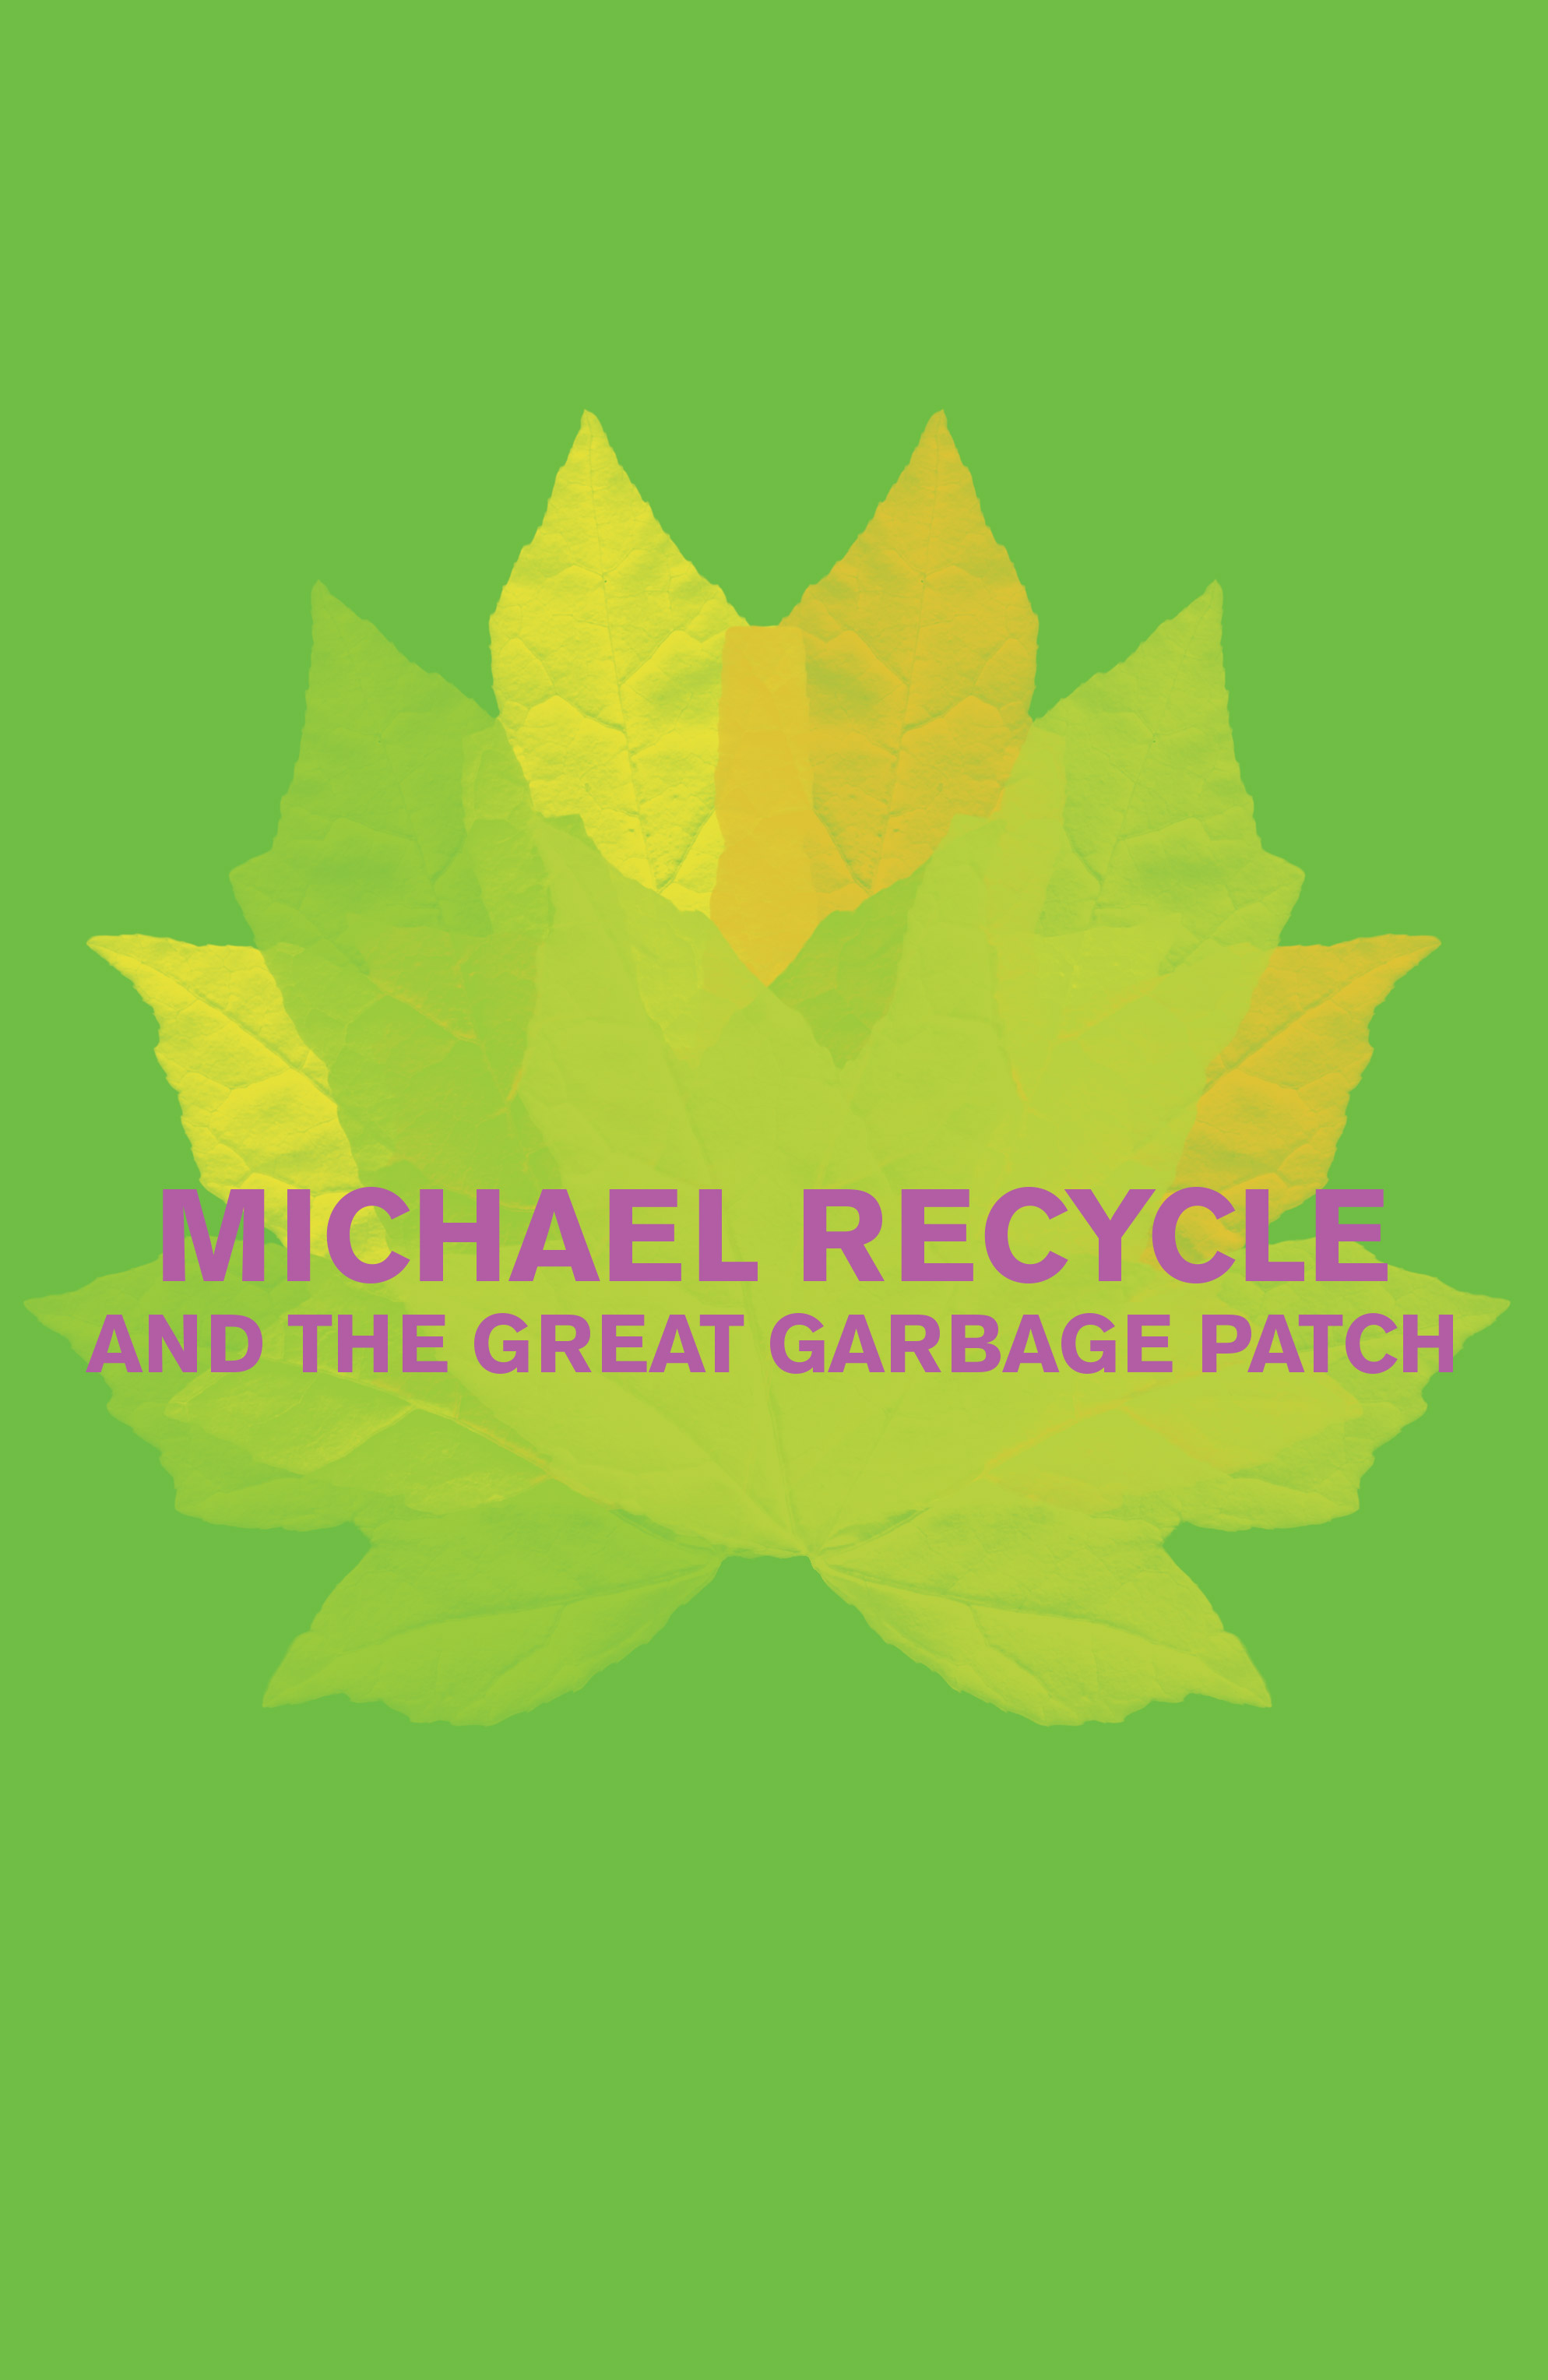 Read online Michael Recycle comic -  Issue #4 - 4